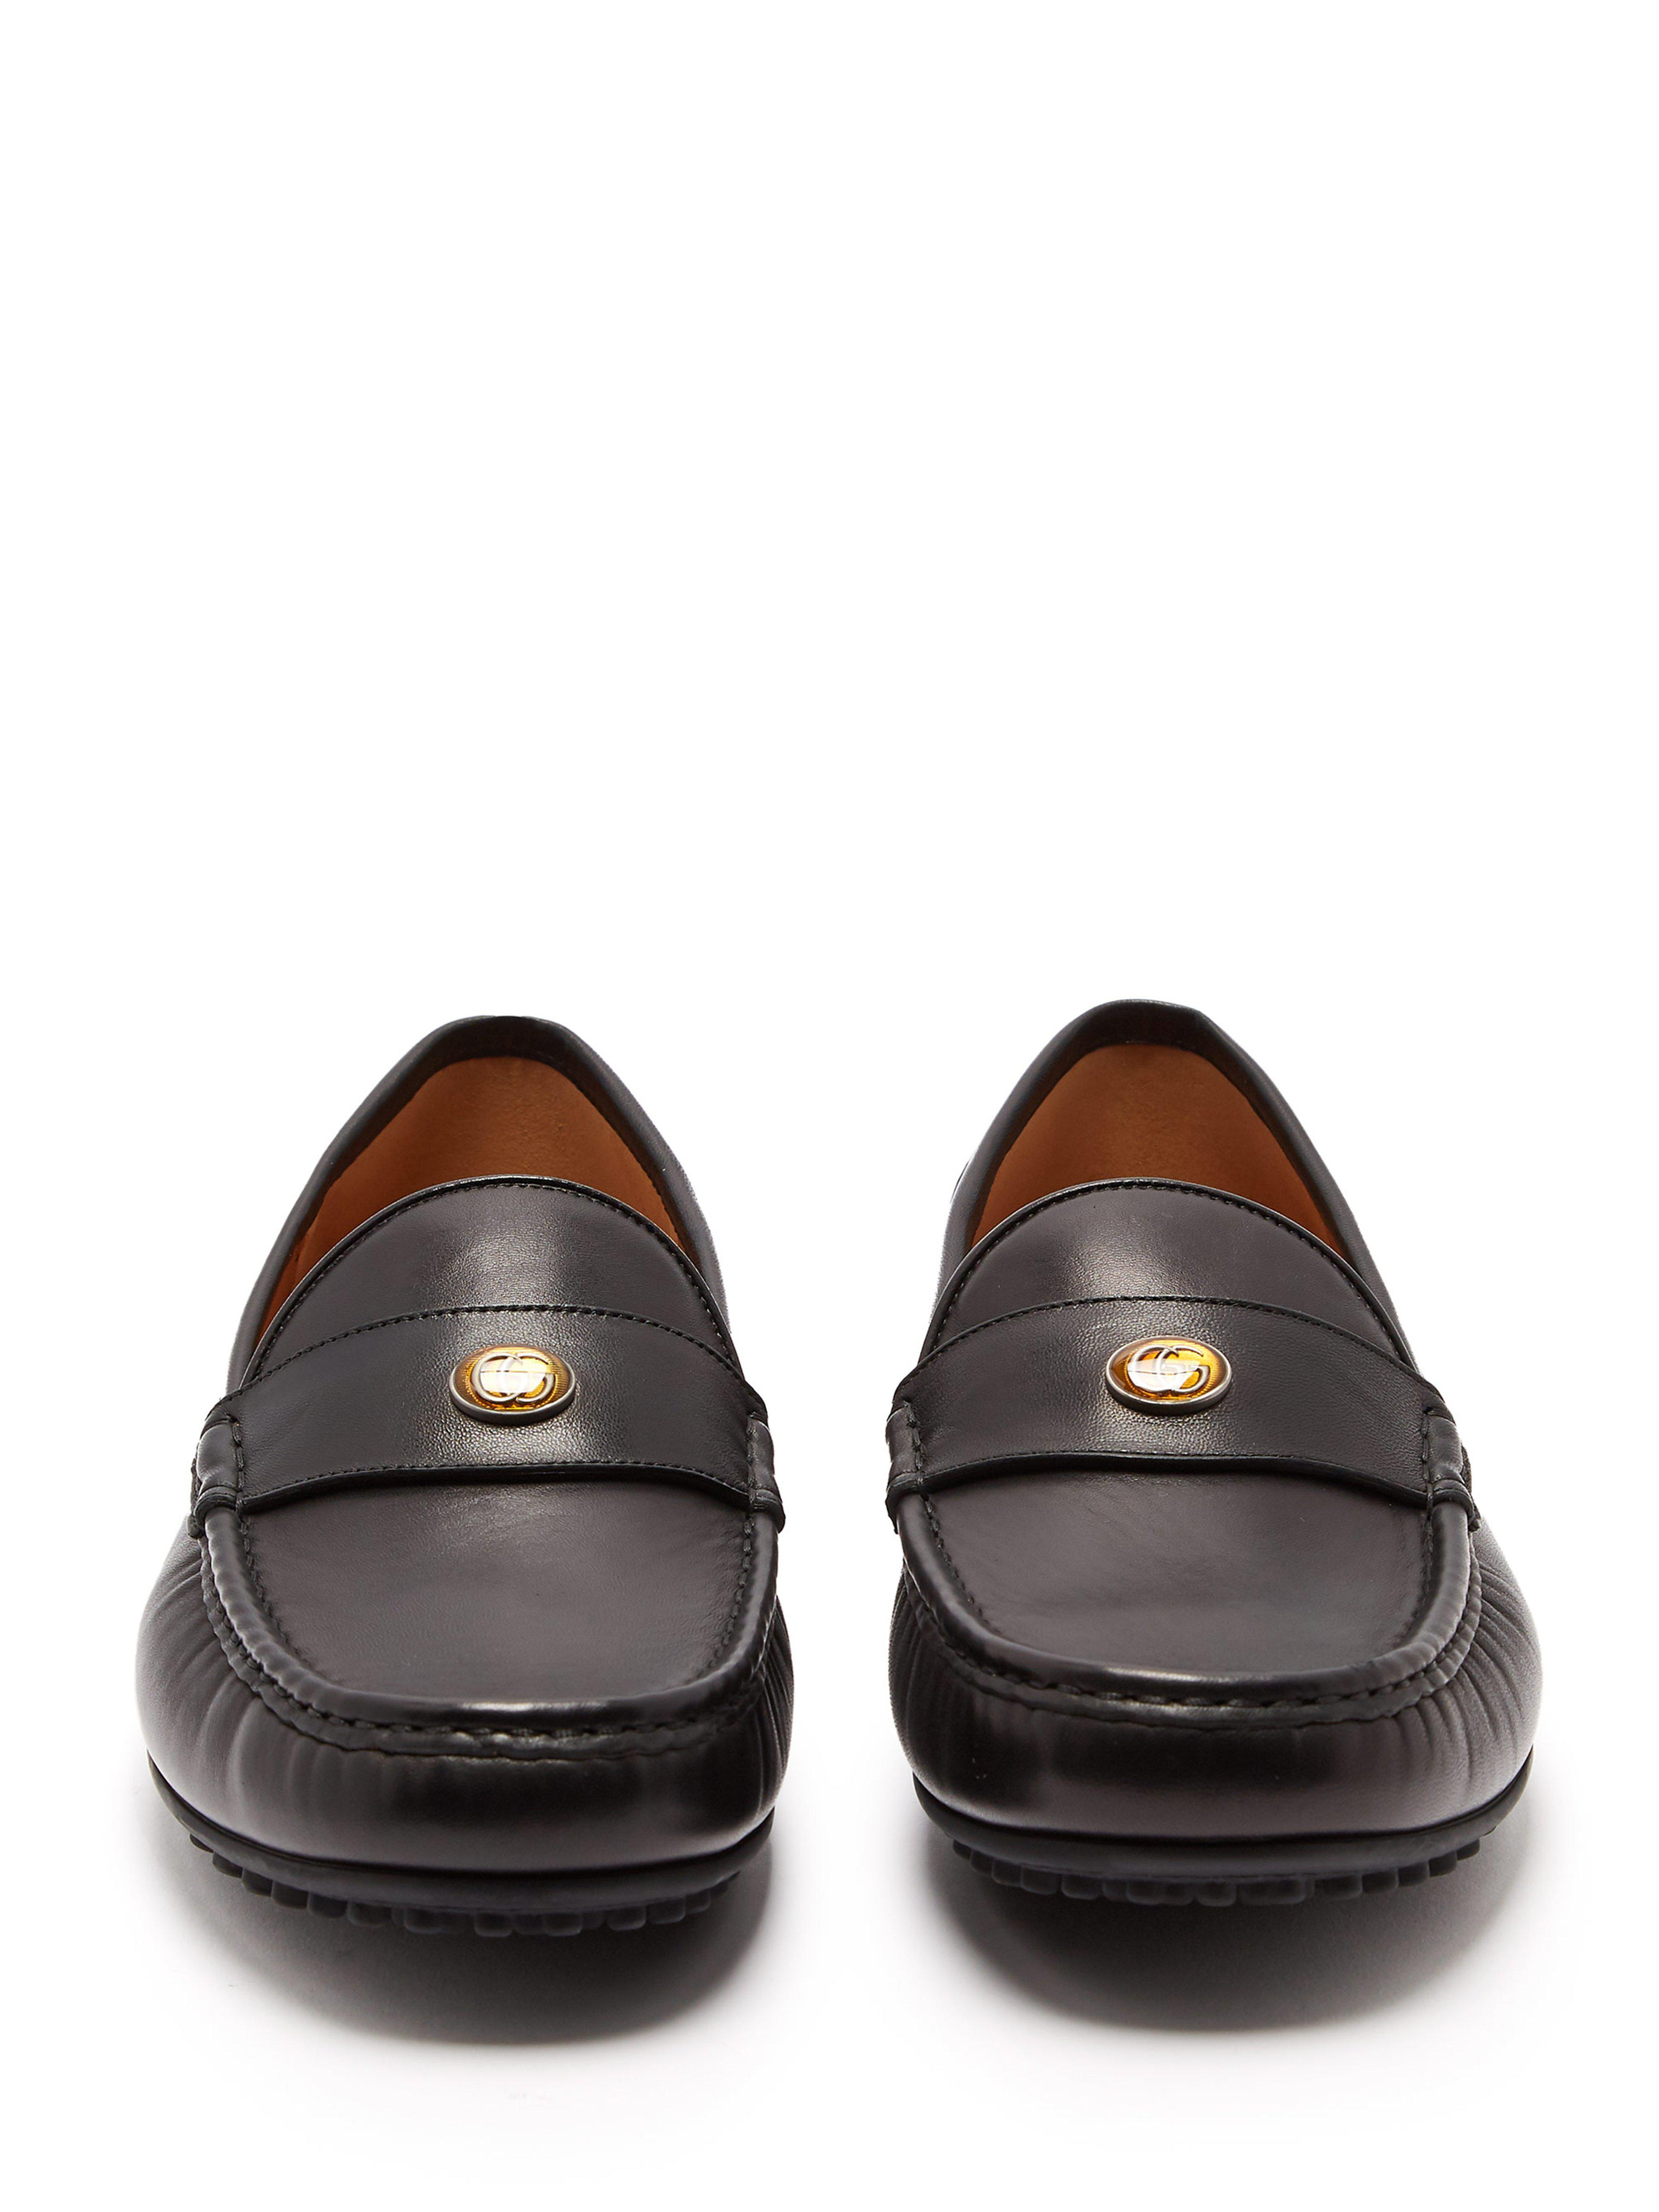 a6ad9ffb604 Gucci - Black Soft Leather Moccasin Loafers for Men - Lyst. View fullscreen